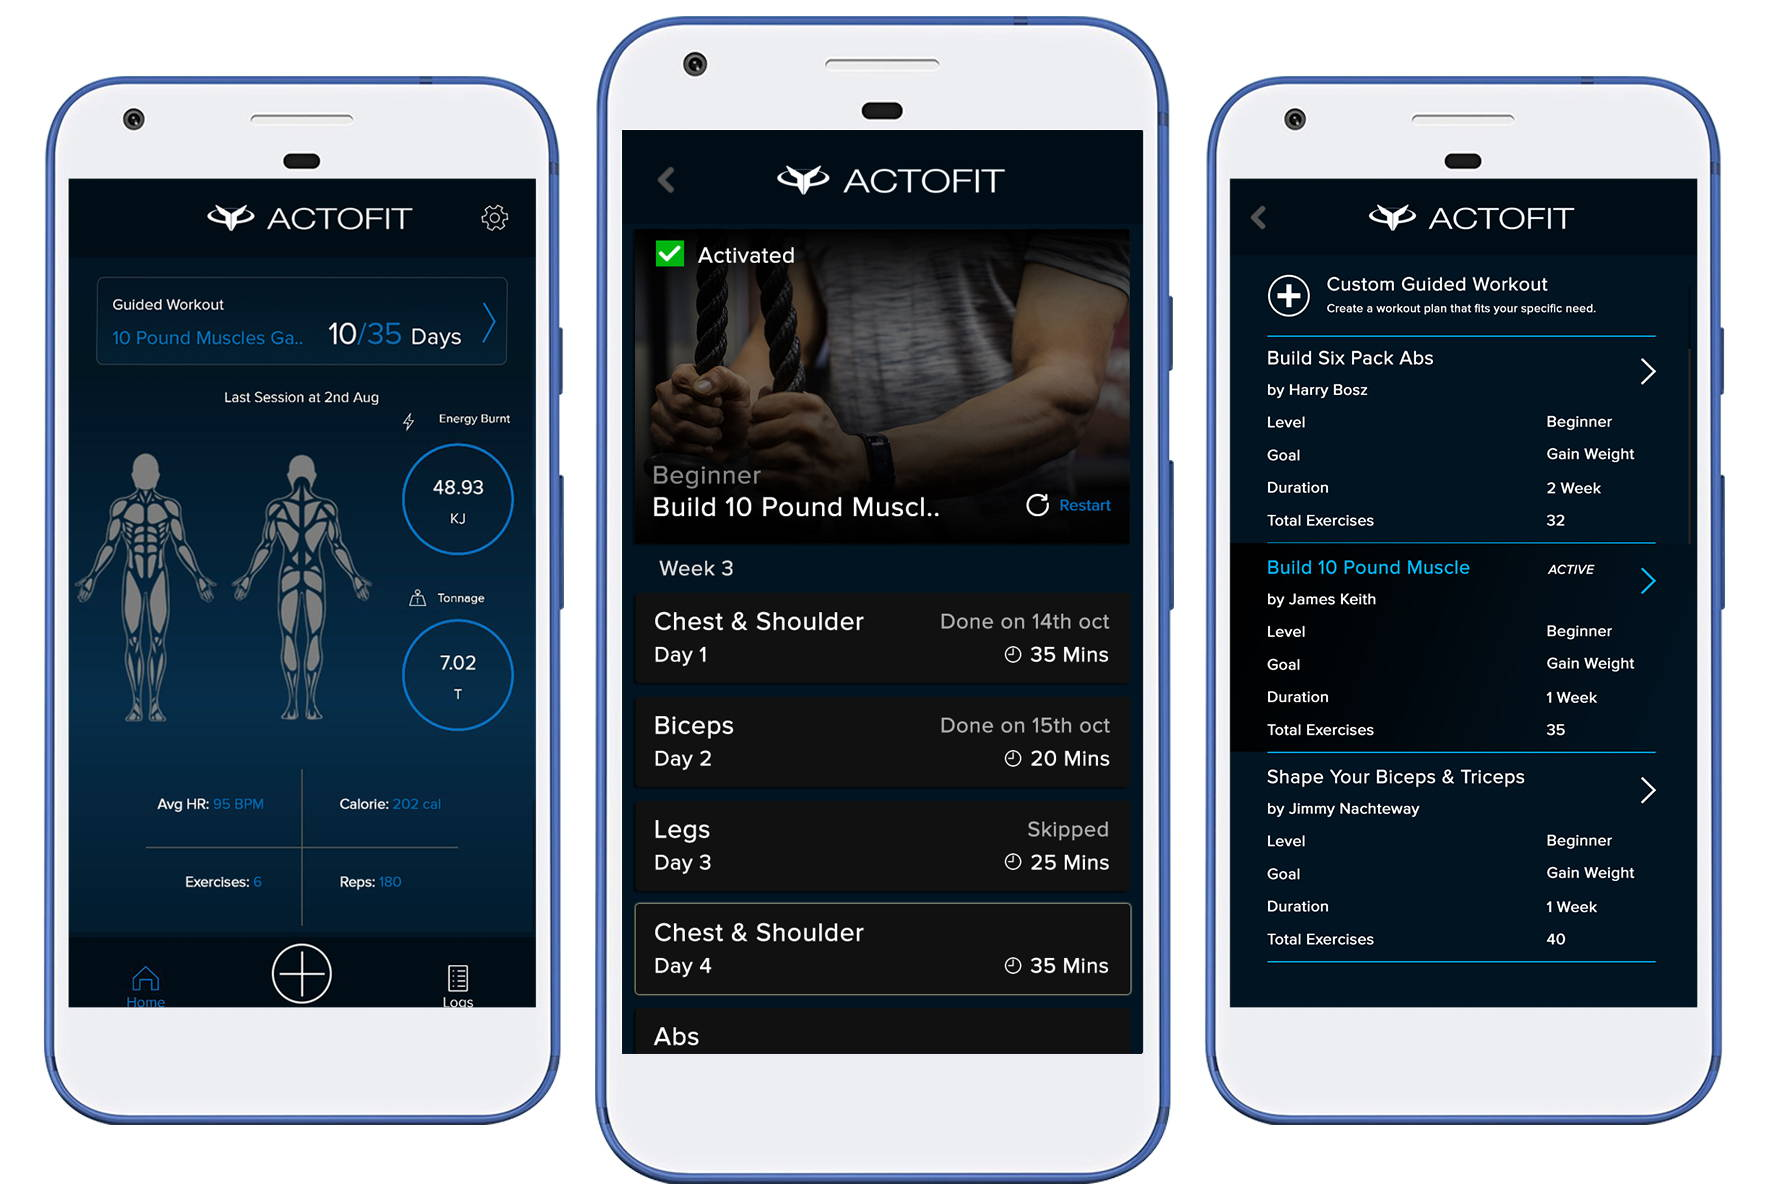 actofit guided workout mode